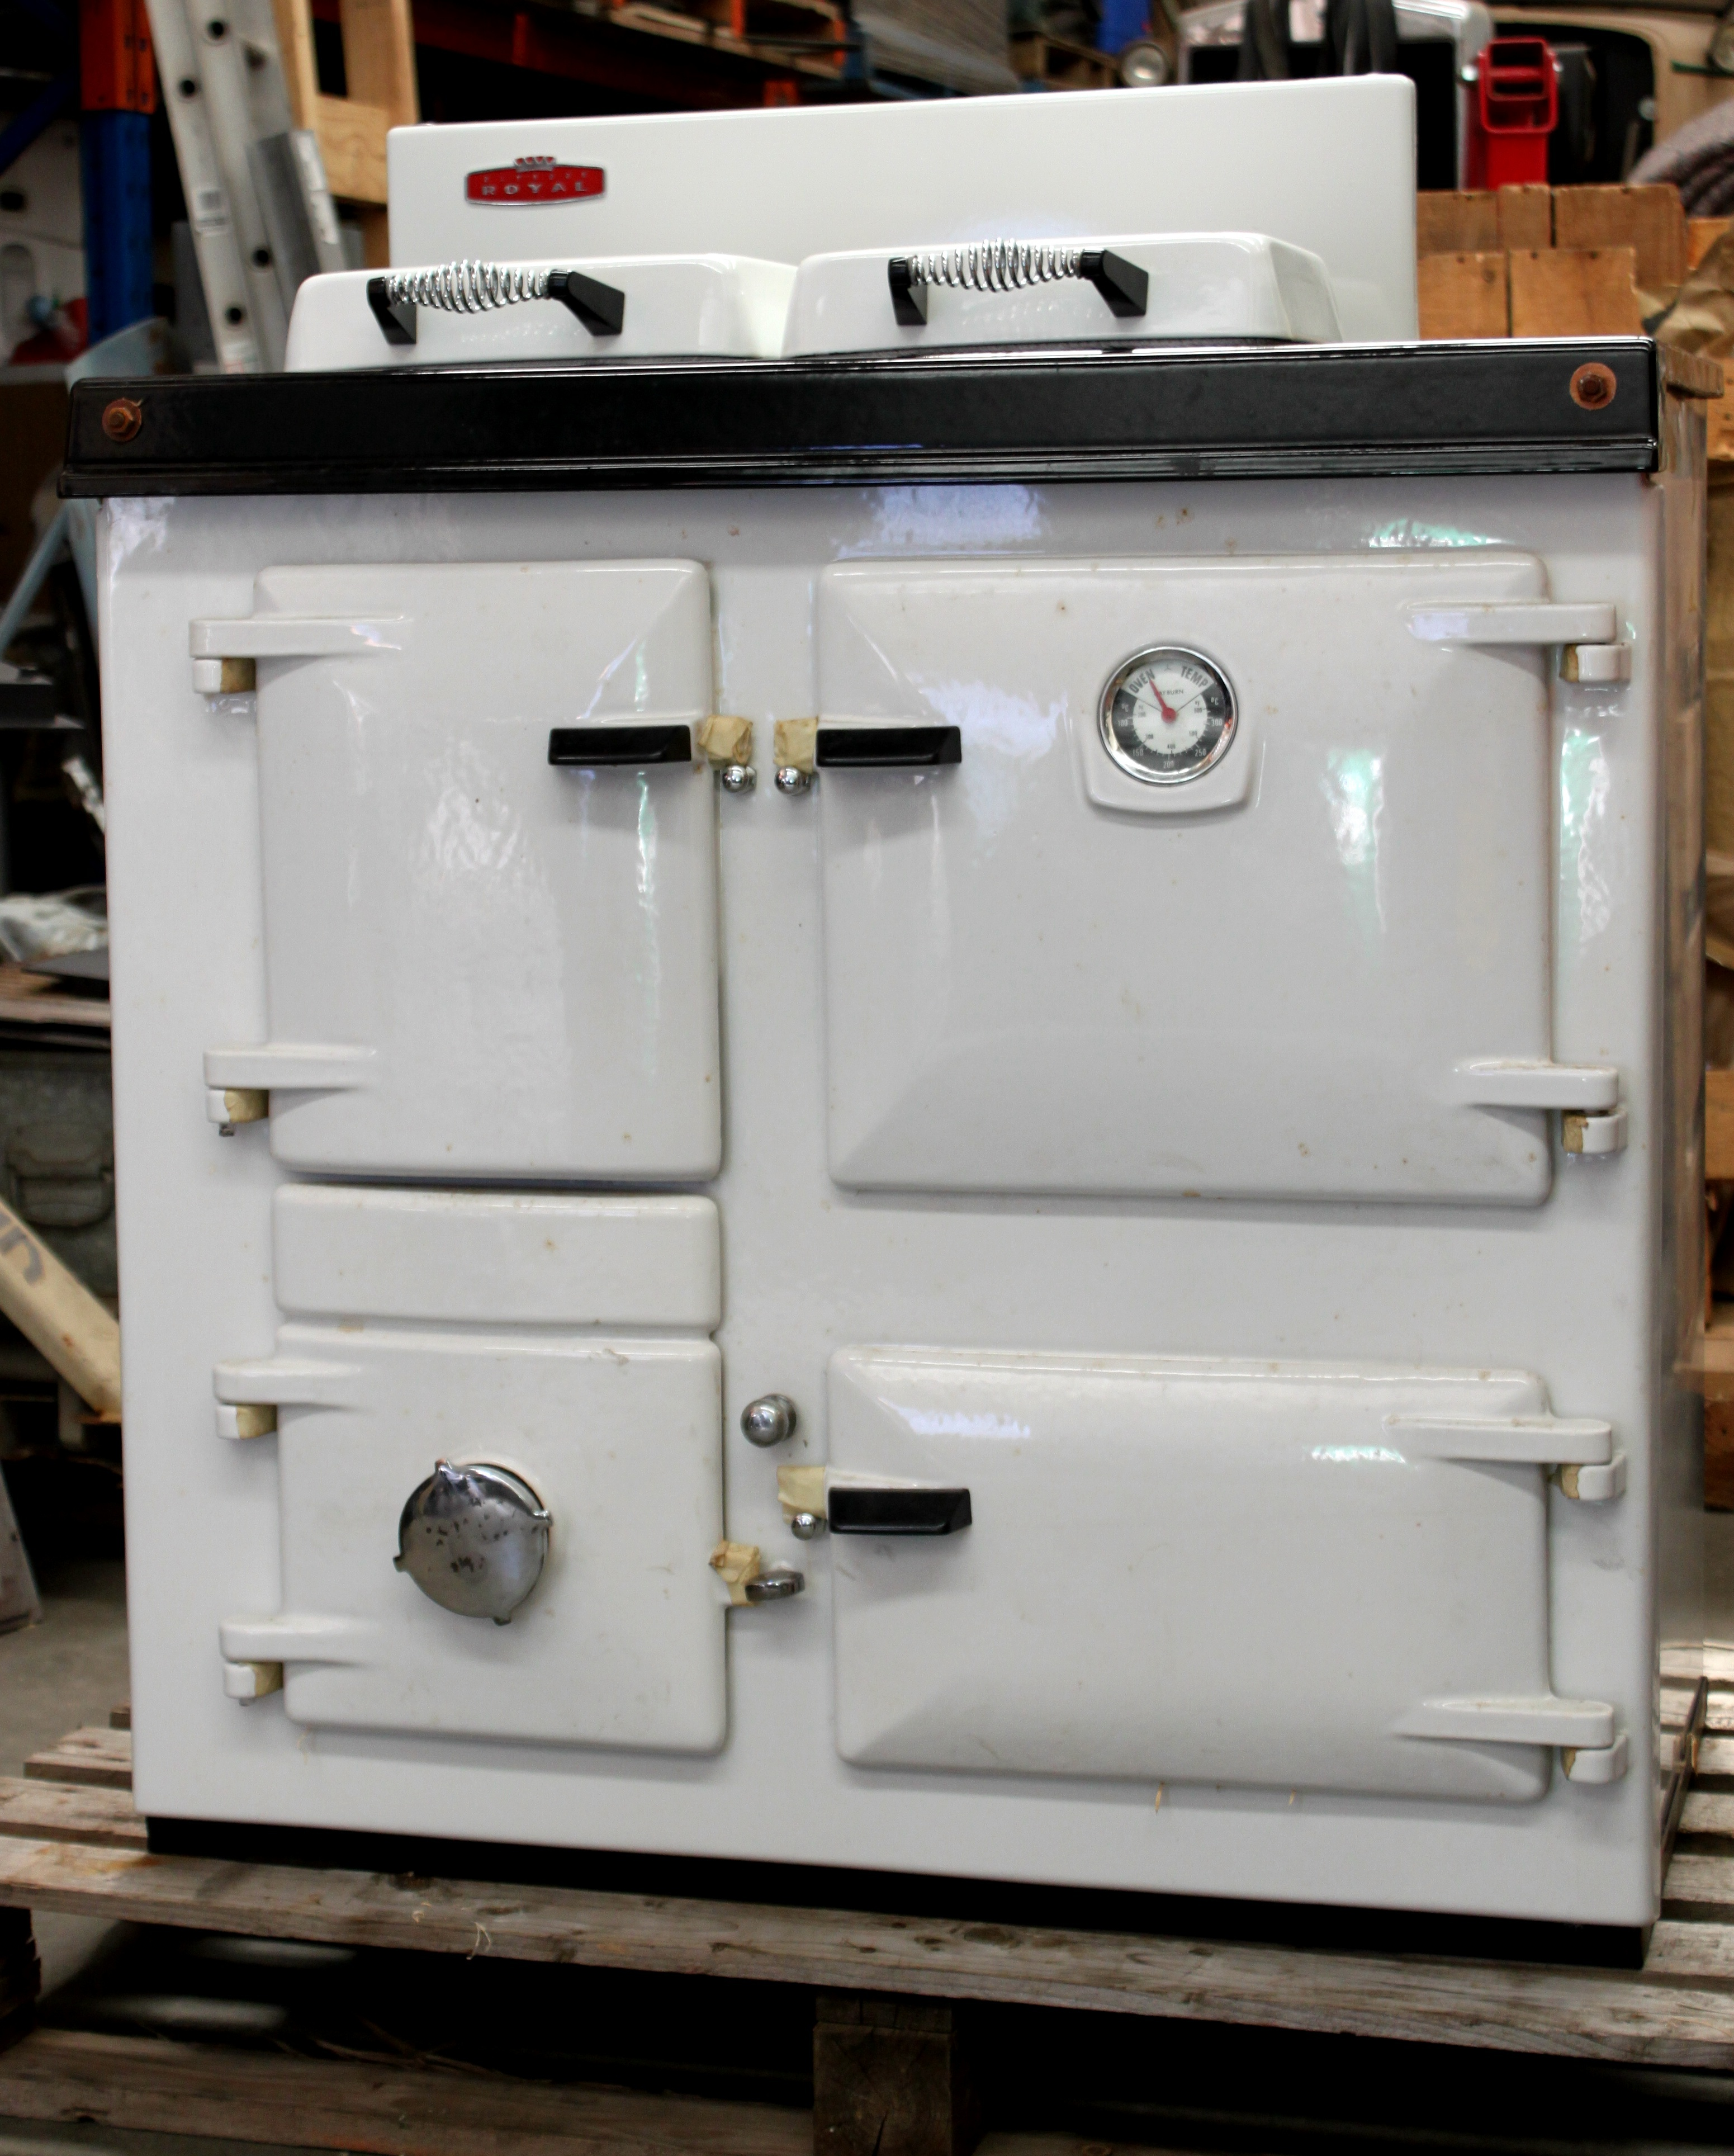 Sold Sorry This Rayburn Royal Cooker Is No Longer